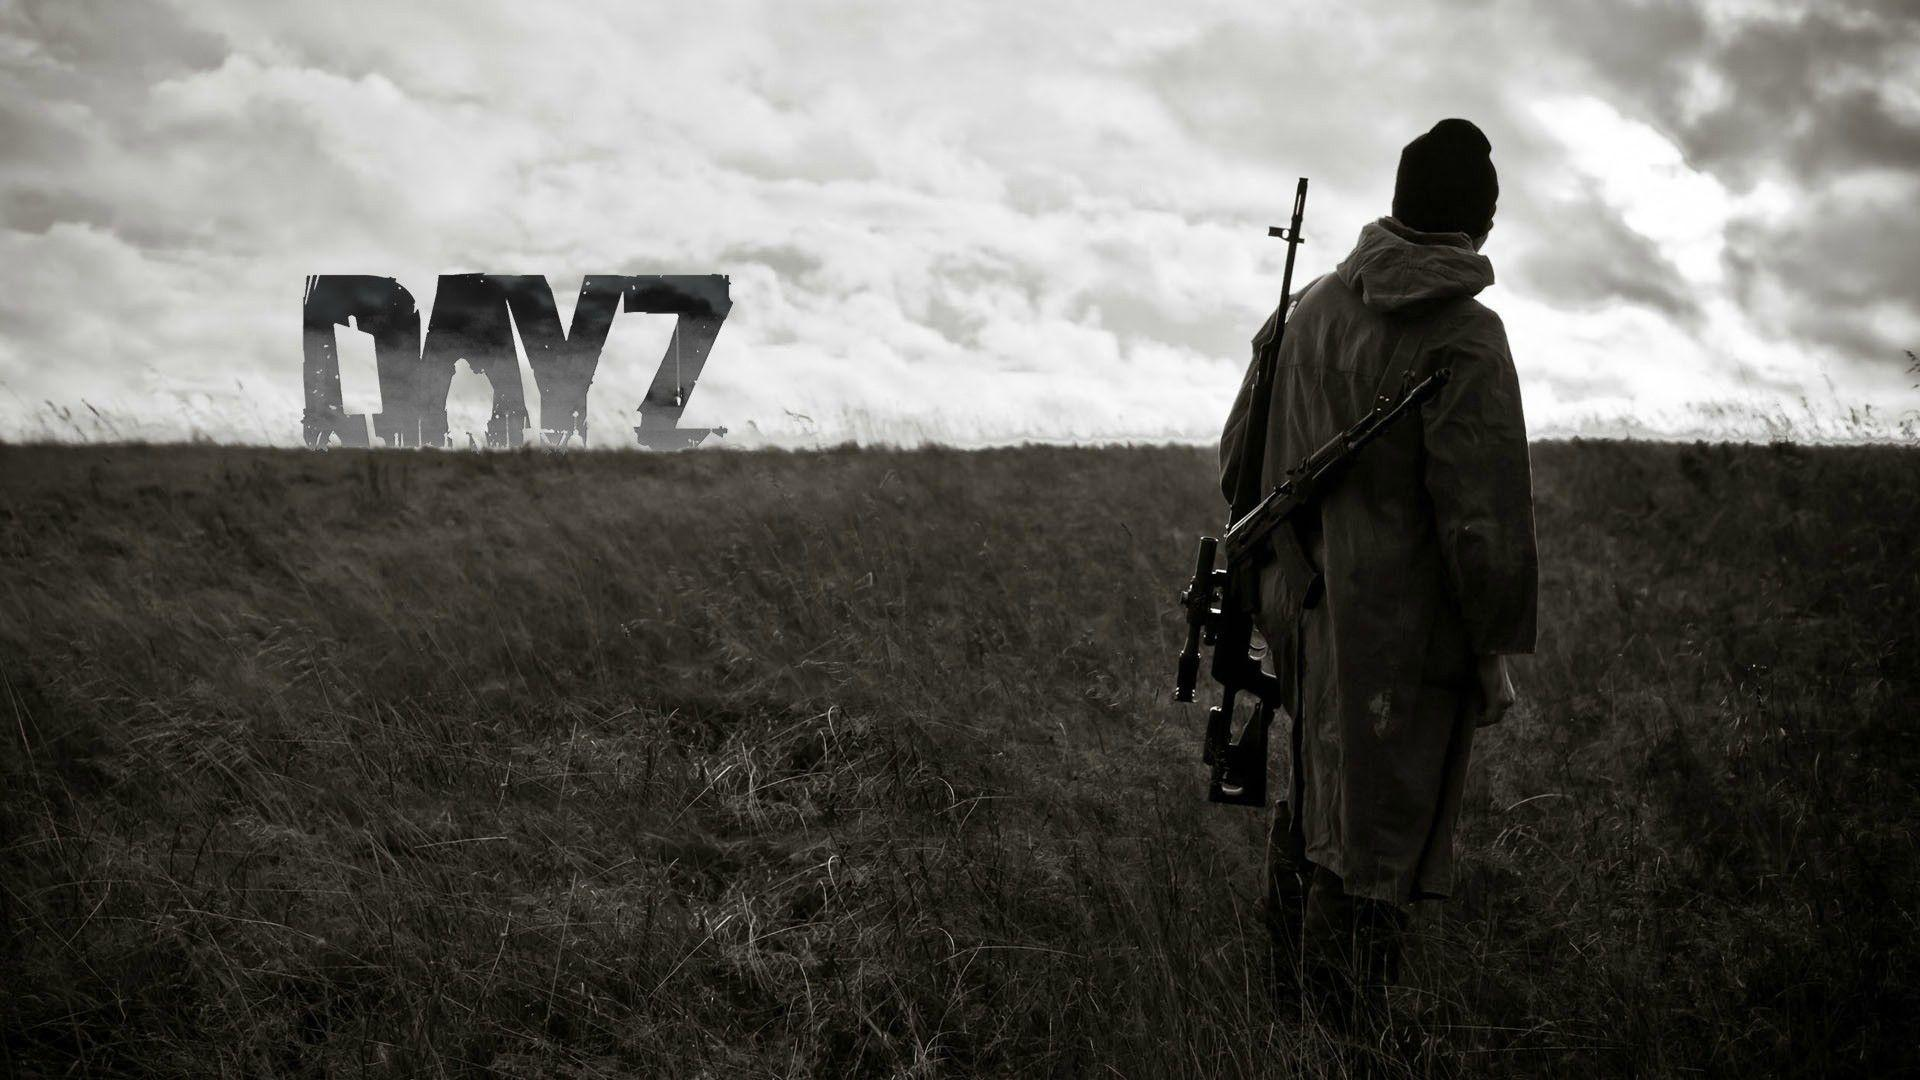 A High Quality Dayz Wallpaper To Use On Your Computer